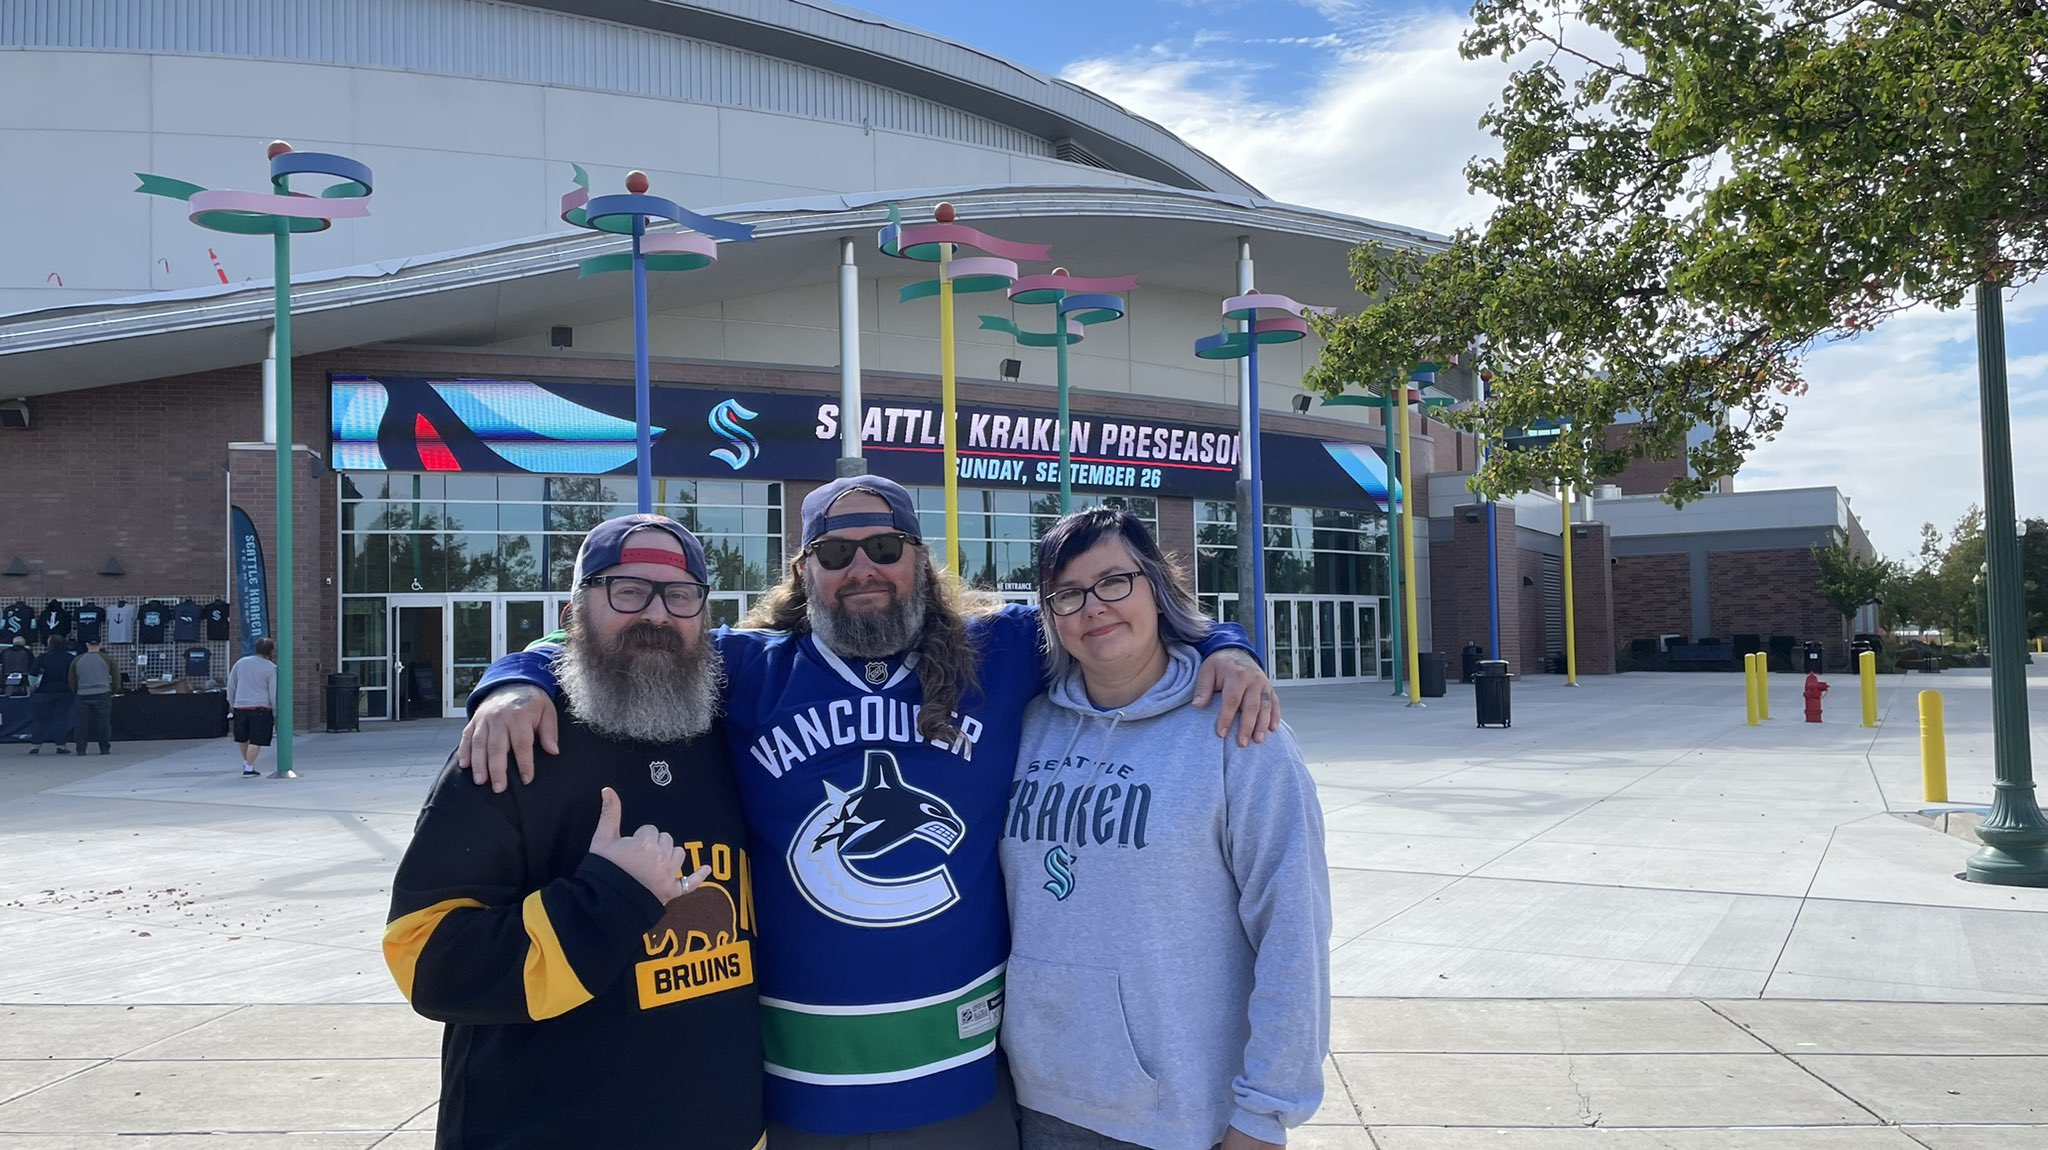 'It's a once-in-a-lifetime experience': Seattle Kraken fans excited to attend first game in Spokane